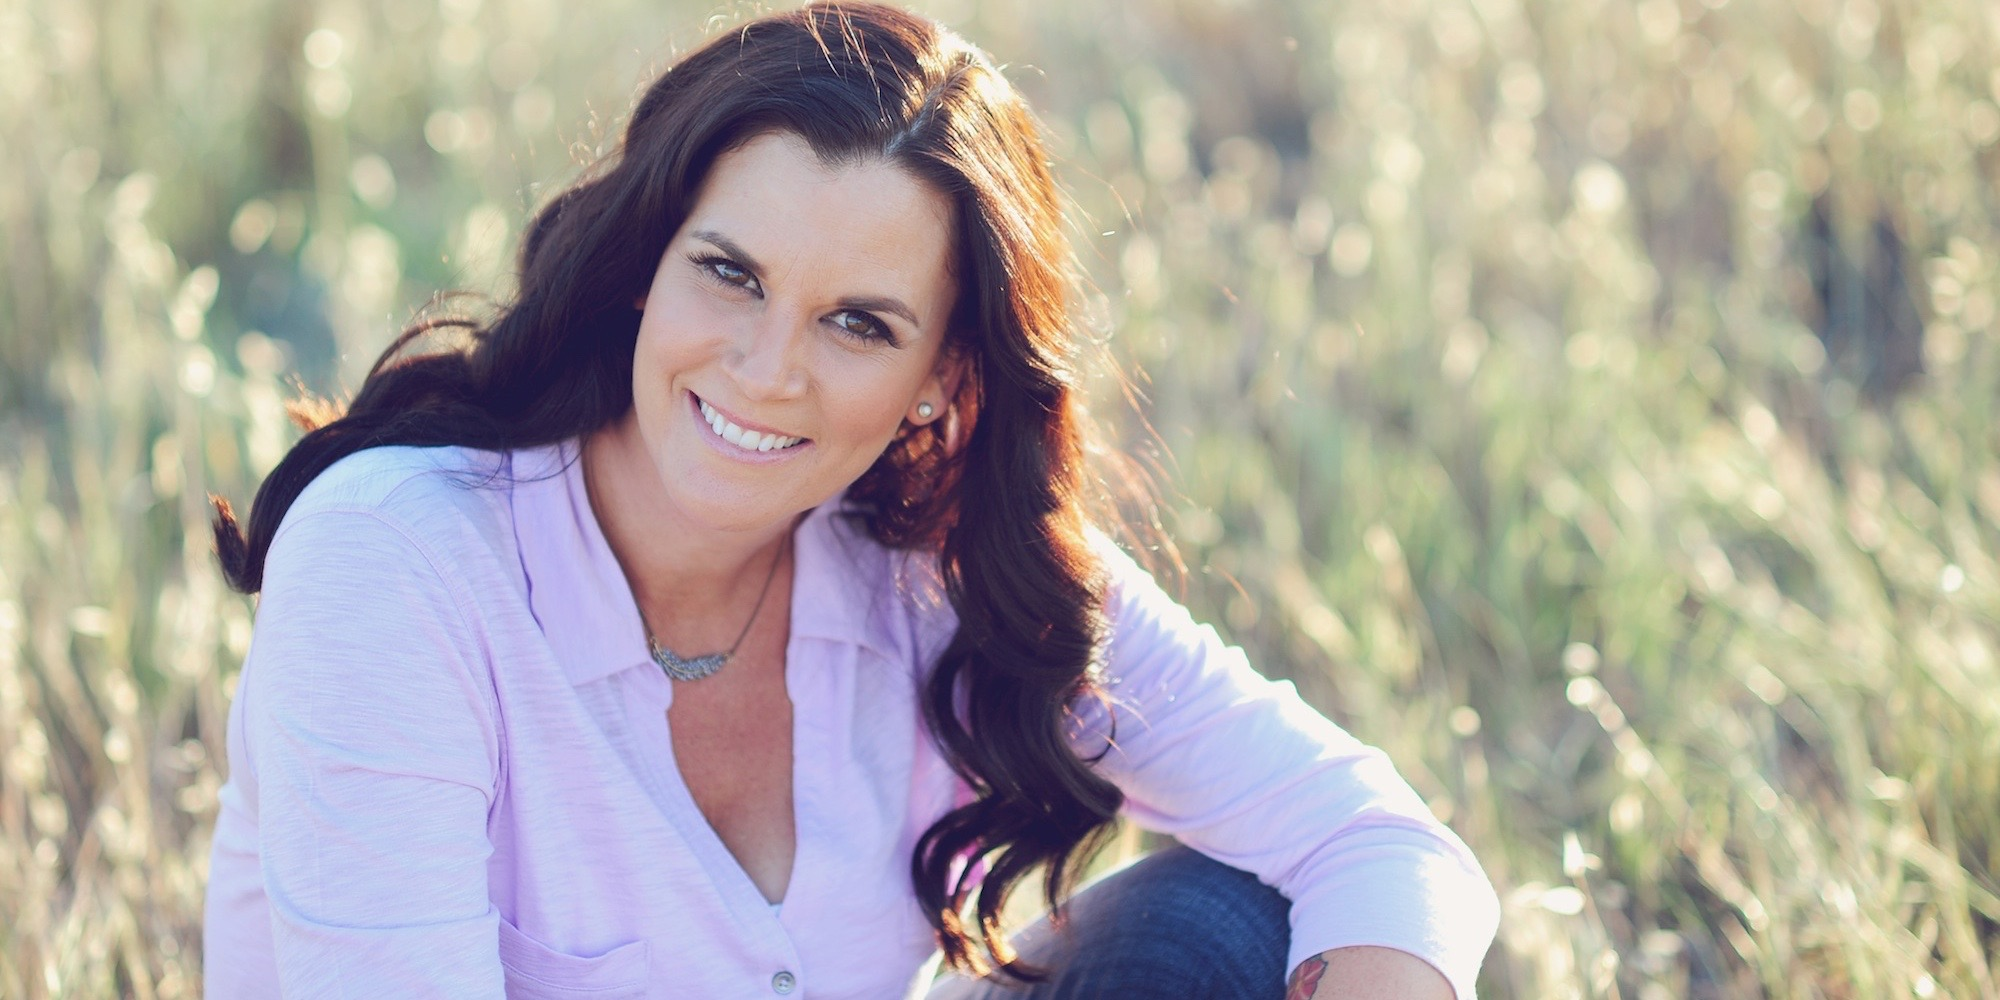 Kathryn Cloward Book Series Author and Performing Songwriter